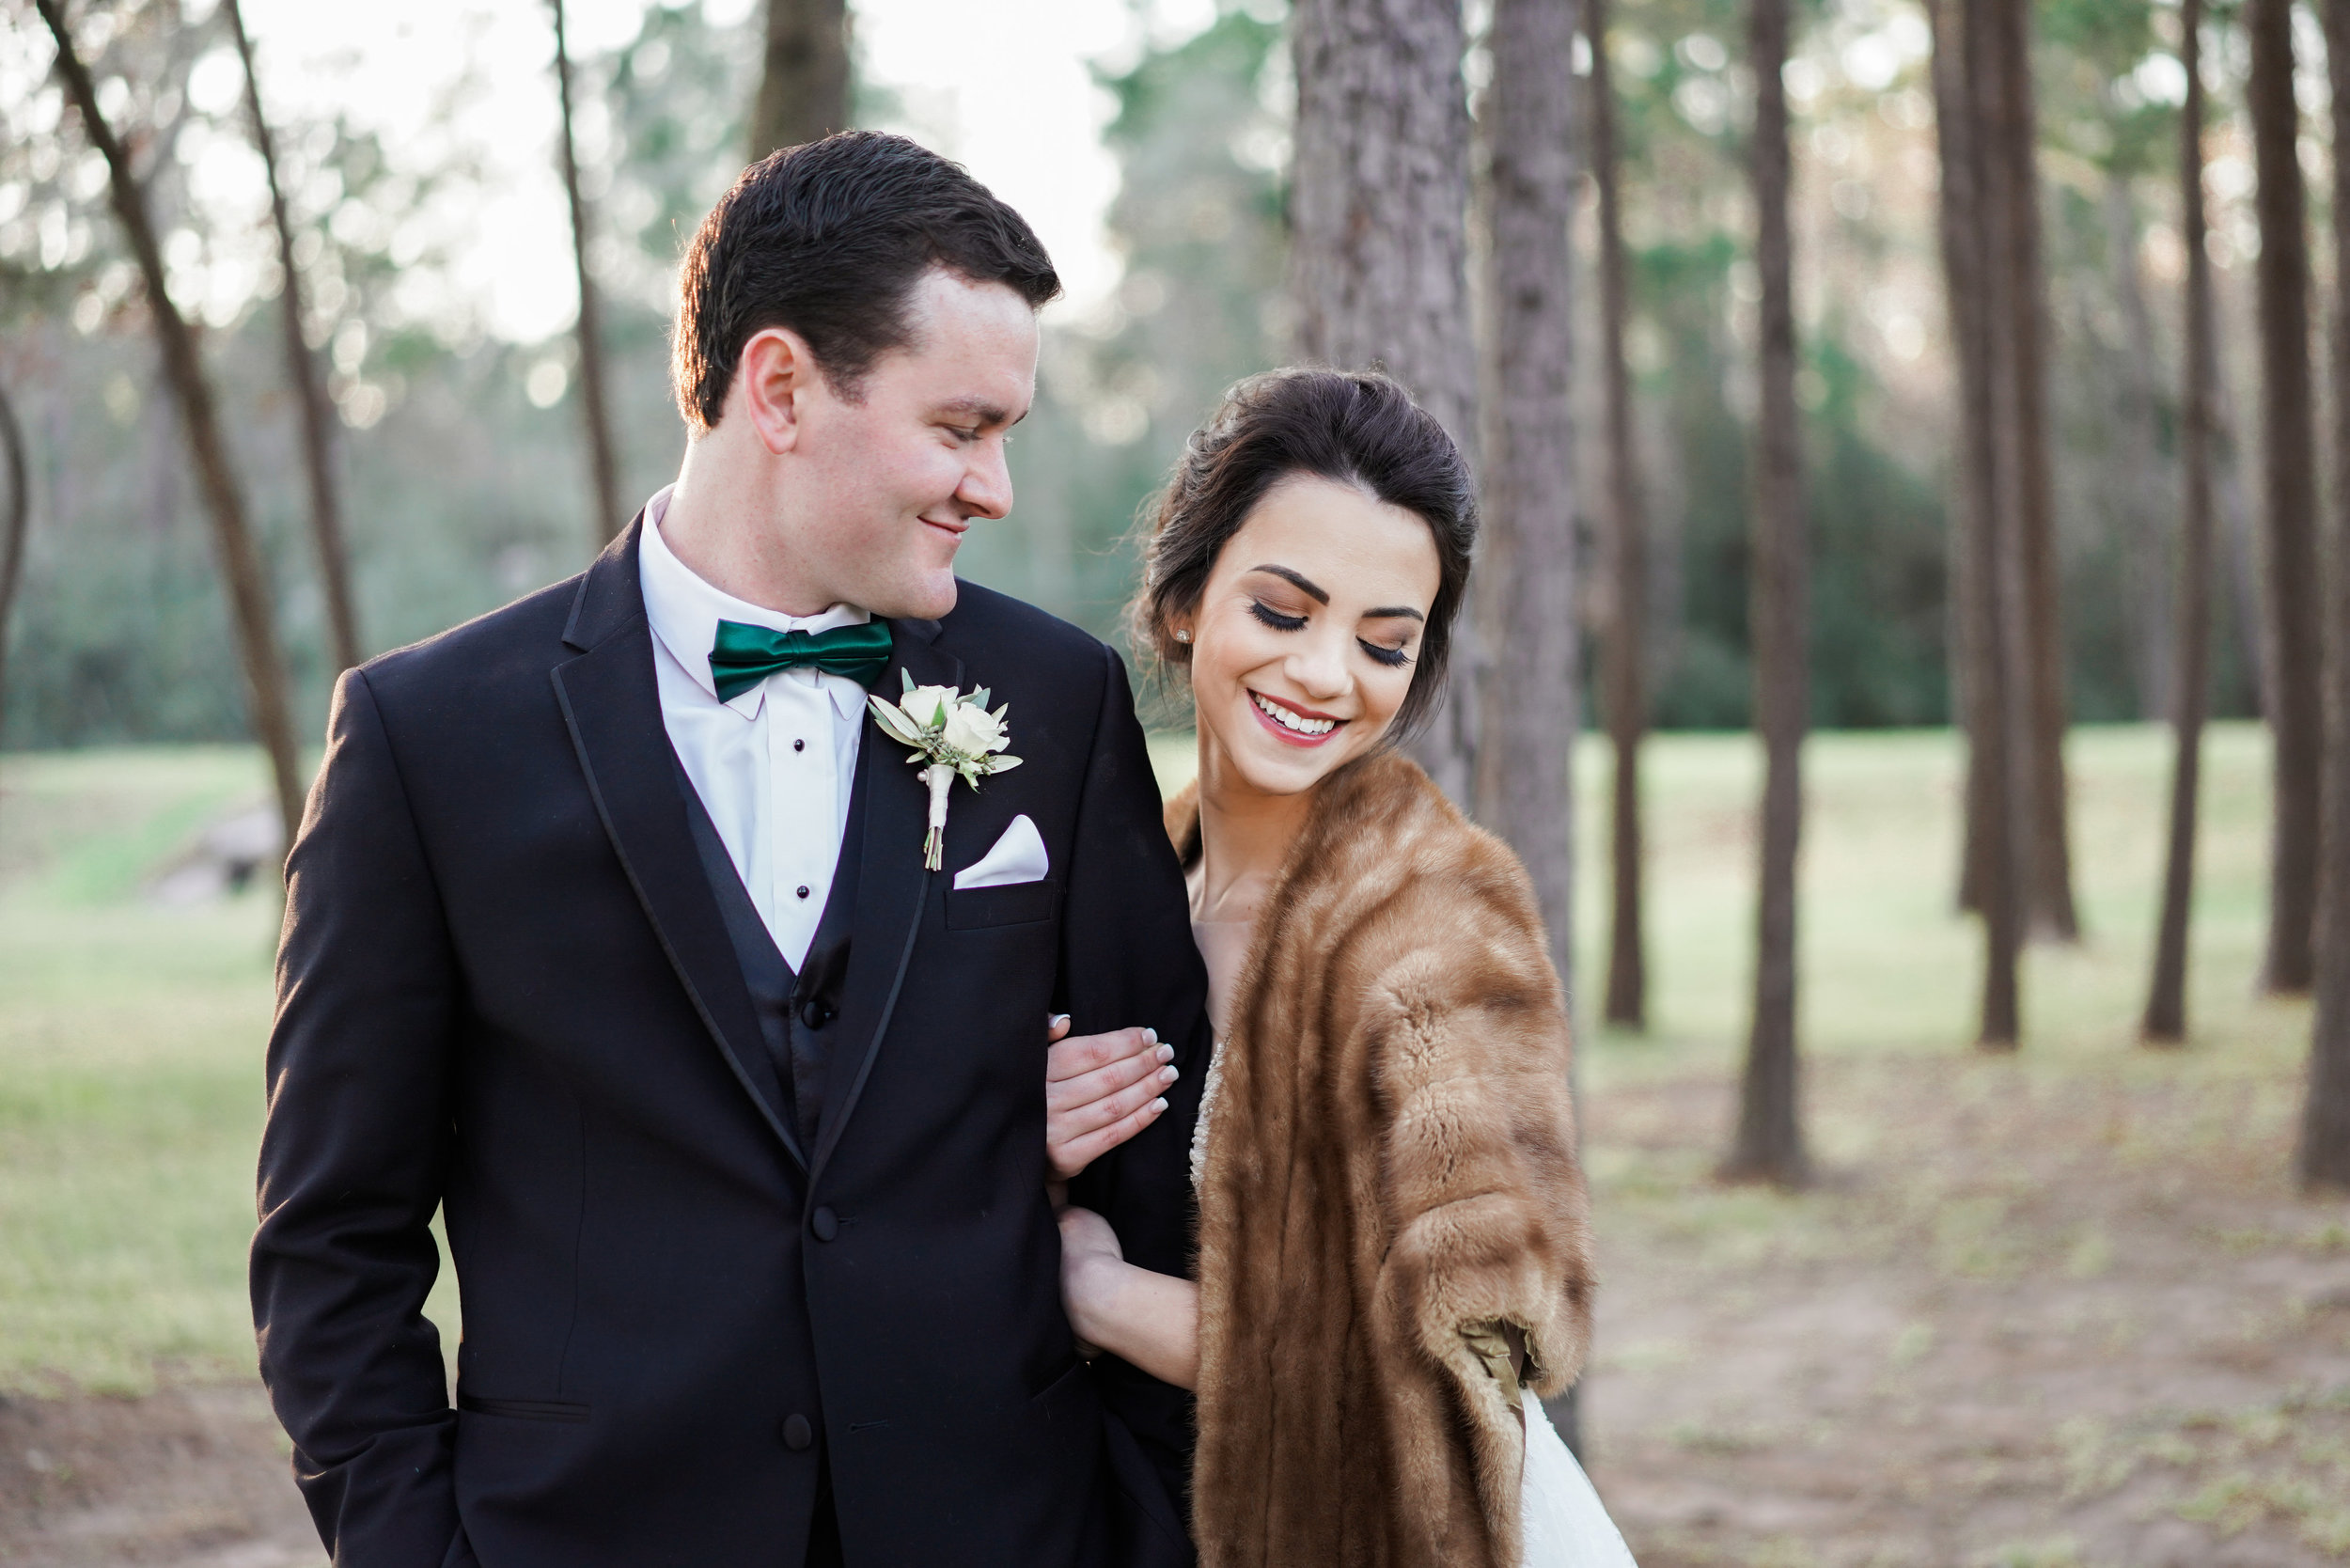 The Springs Event Venues- Lake Conroe wedding photographer. The perfect winter wedding. Houston and Austin wedding photographer. Love the fur coats and the woodland setting.